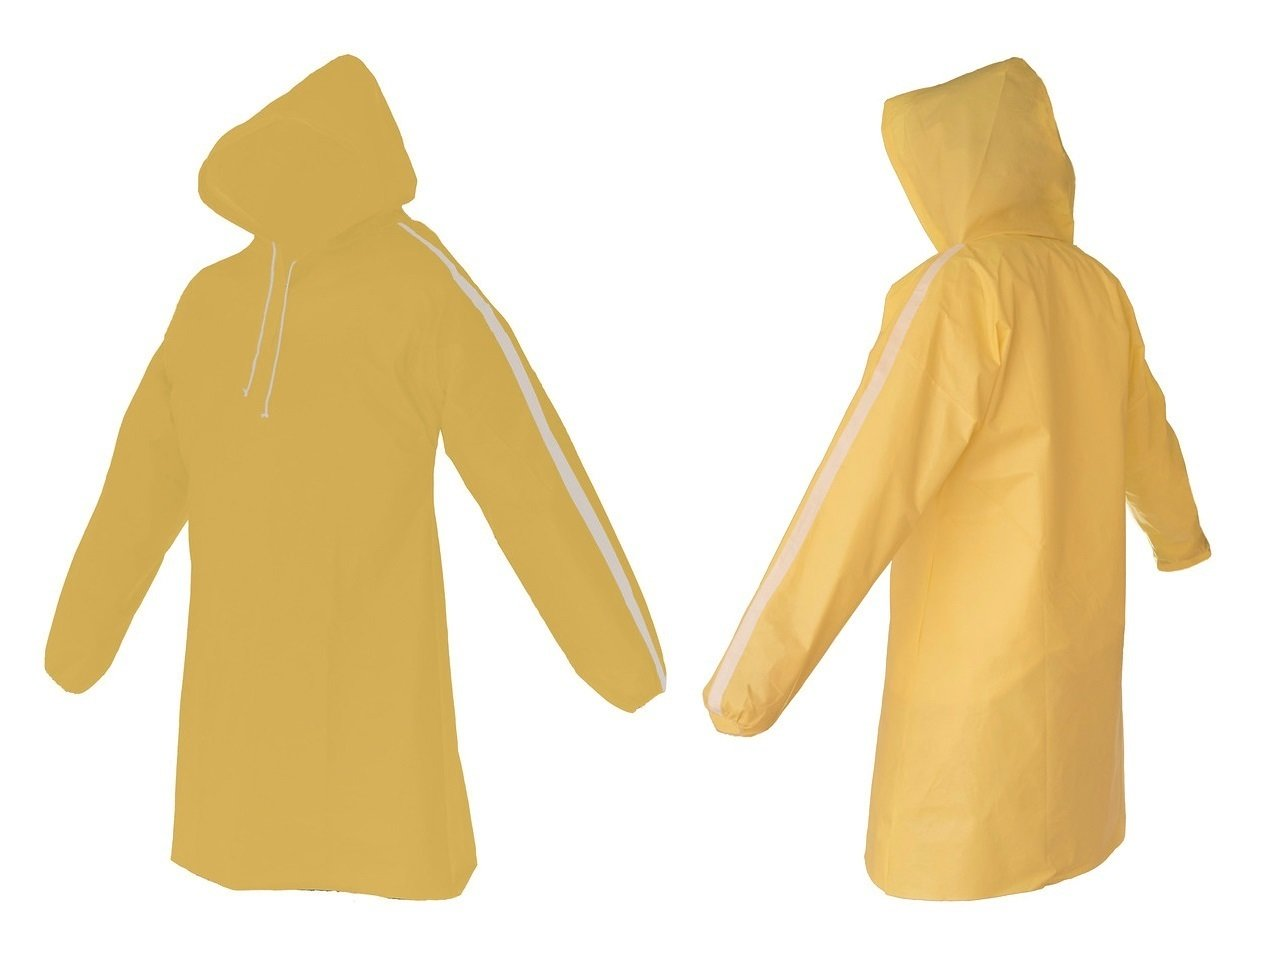 AllWeatherWare (1-Piece) Waterproof Breathable Lightweight Rain Poncho - Yellow